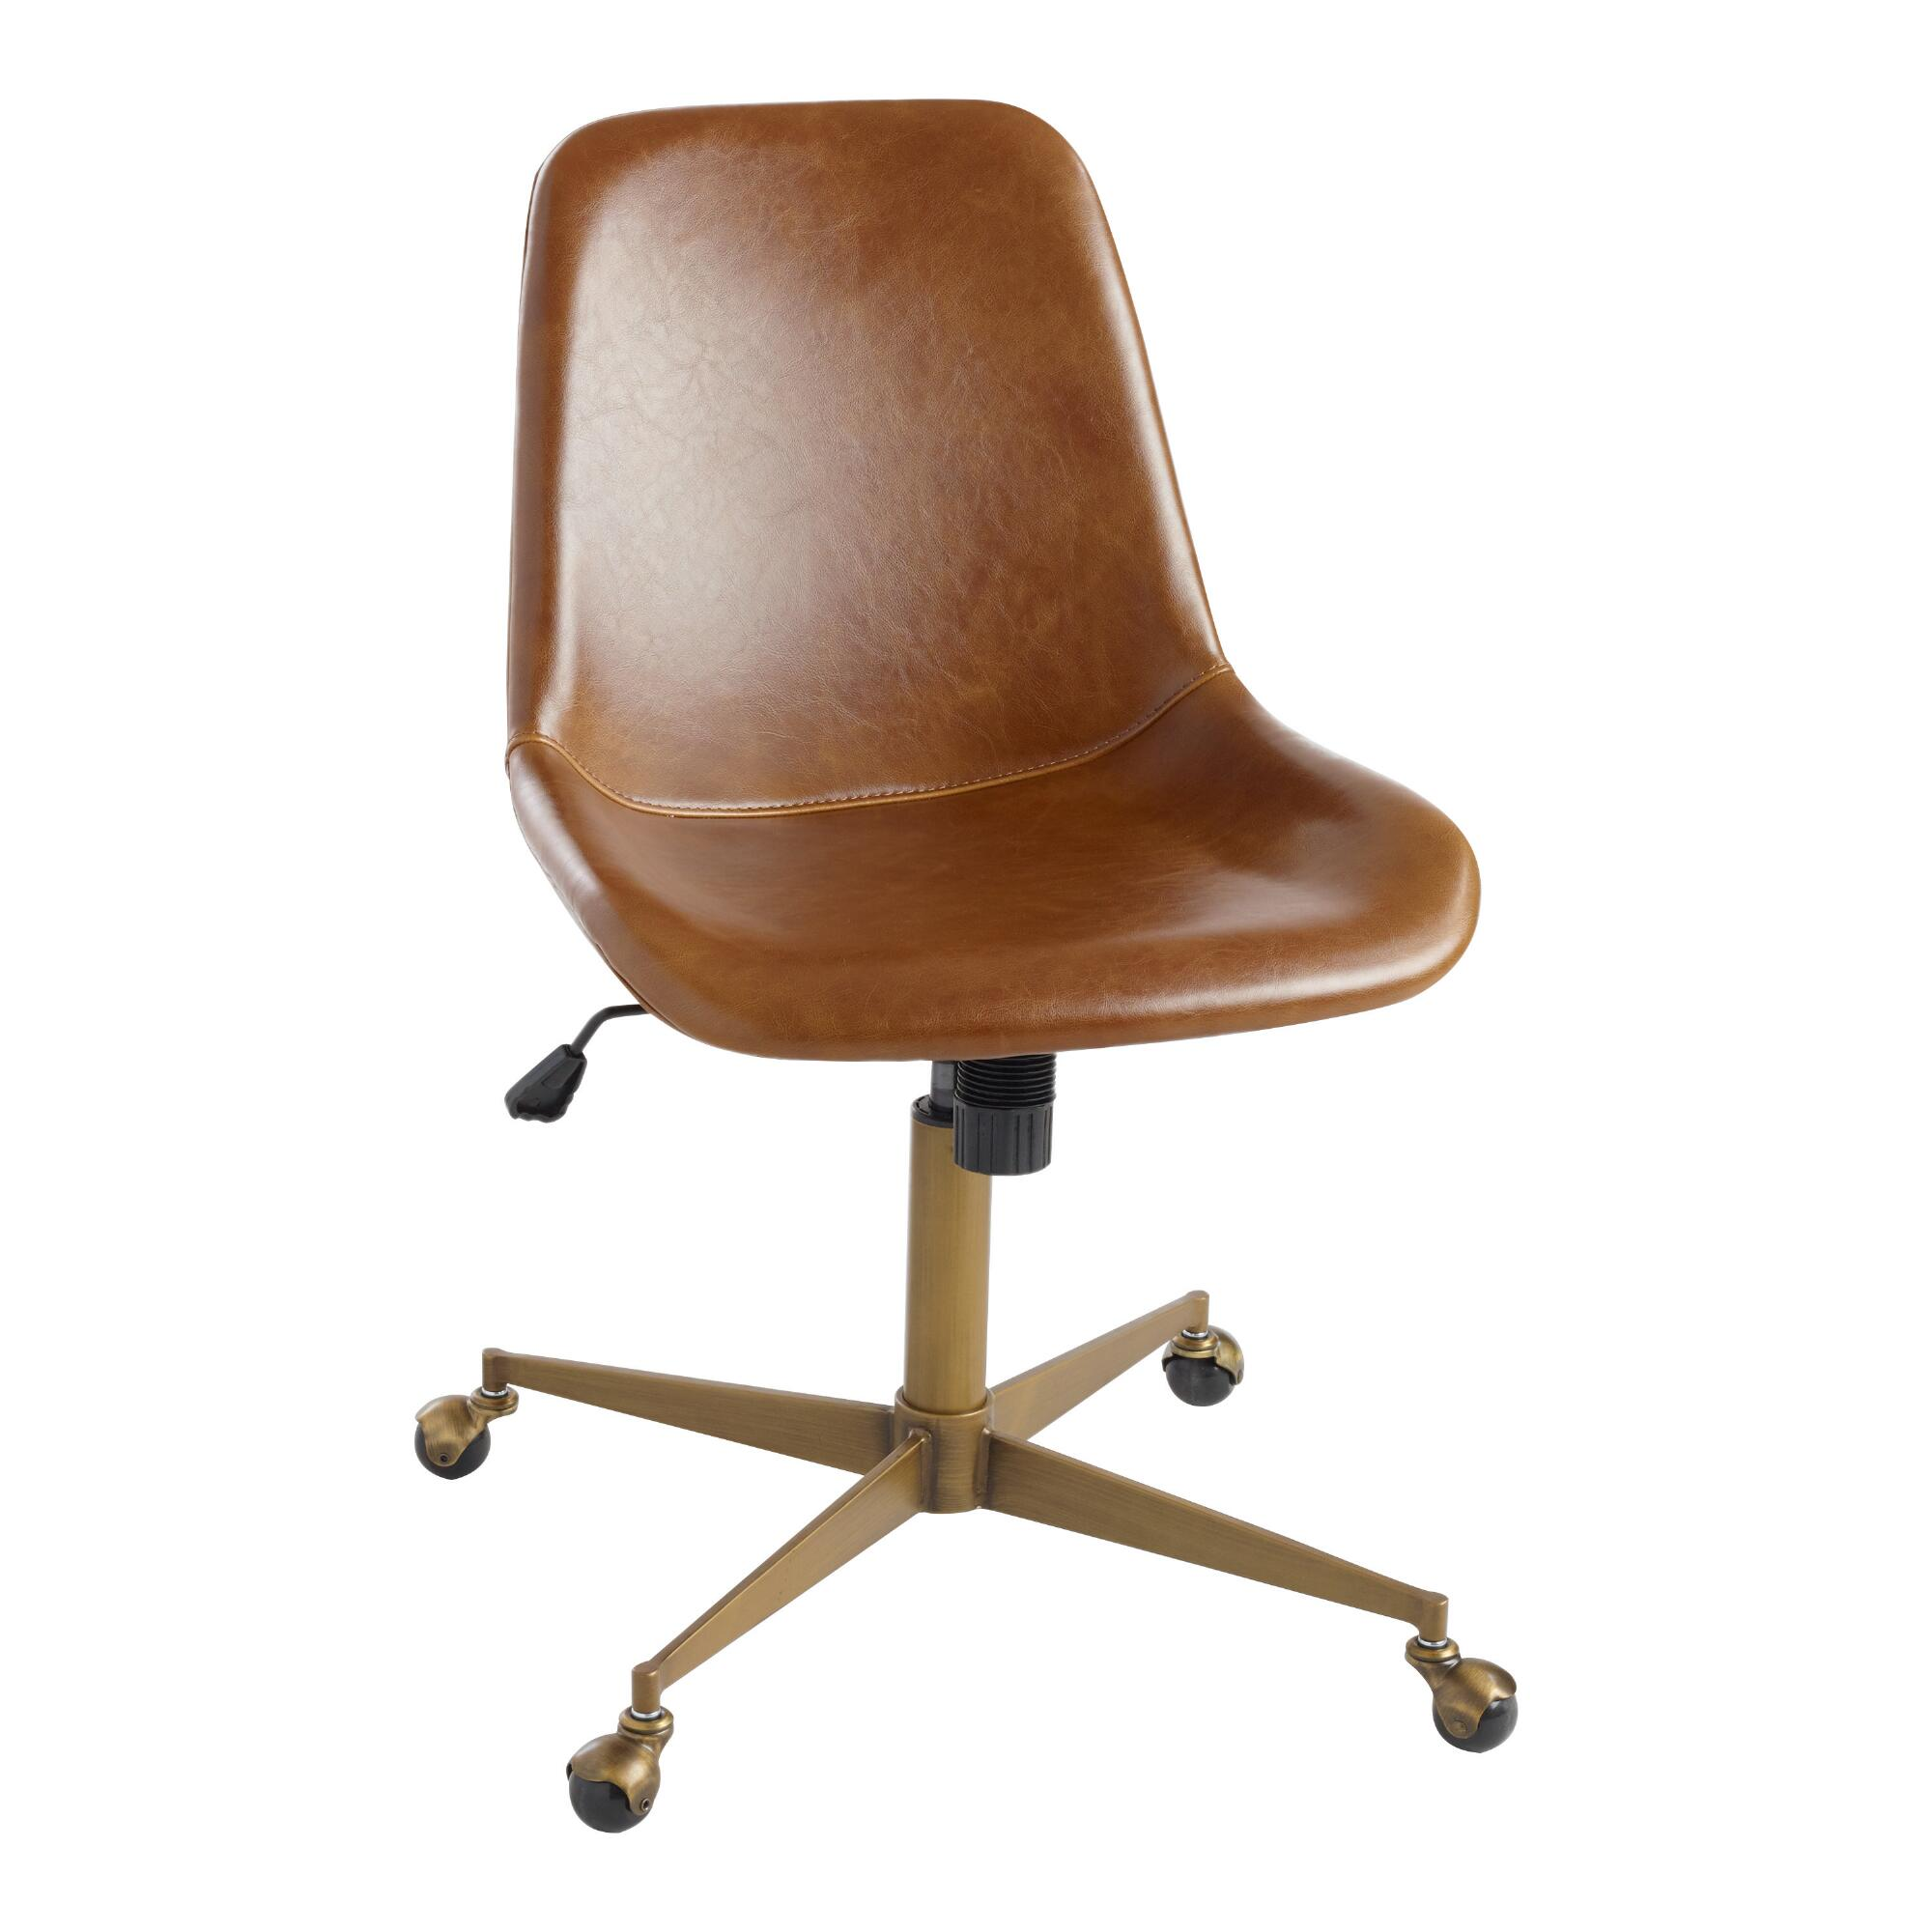 Decals For Baby Room, Cognac Bi Cast Leather Molded Chair World Market